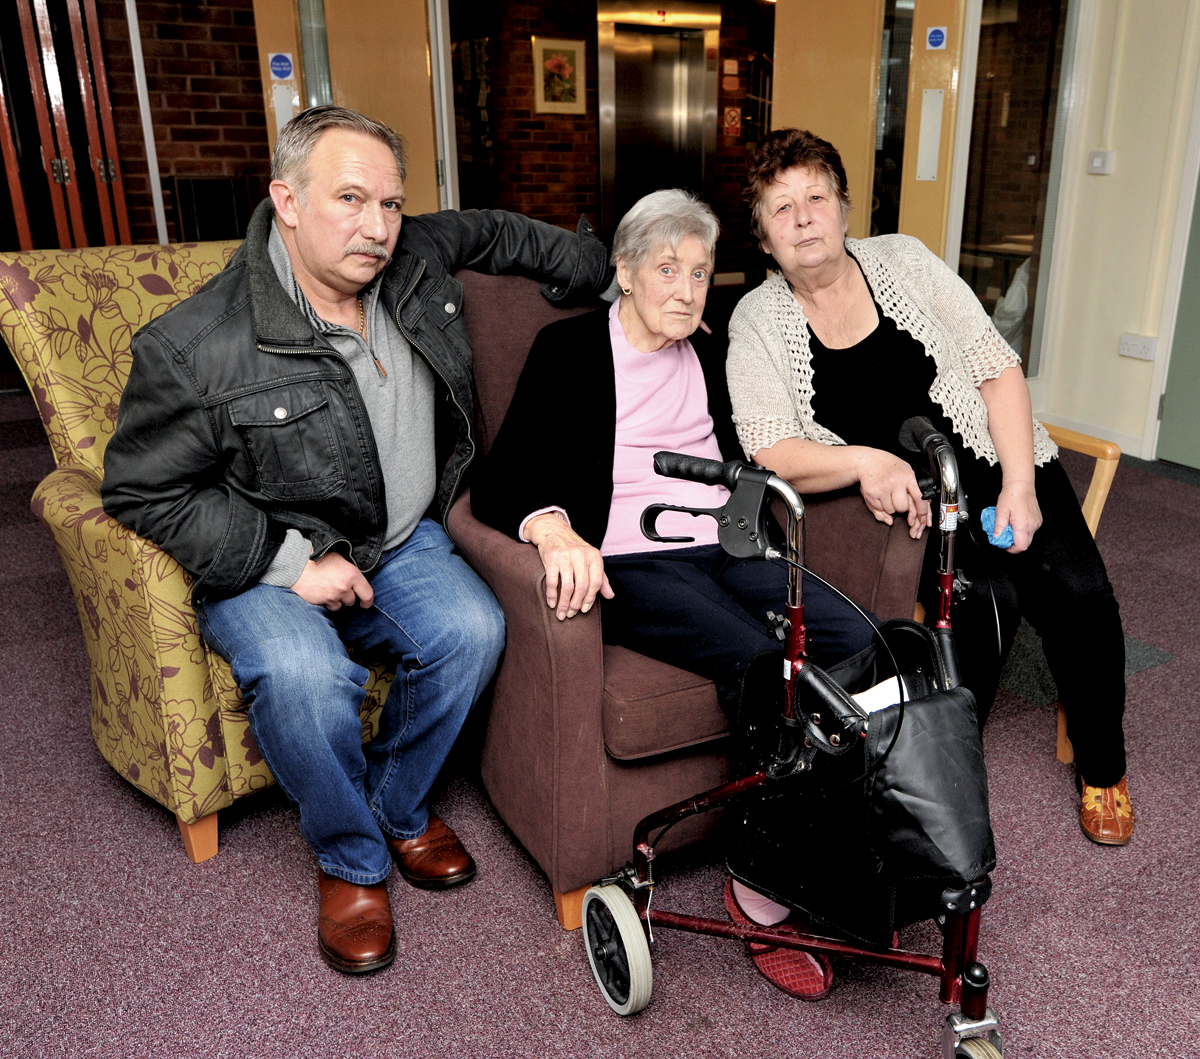 CONCERNED: Chelmsford Court resident Grace Thomas, centre, with her daughter Megan Straight and son-in-law Robert Straight. Picture: John Anyon. 0214490302